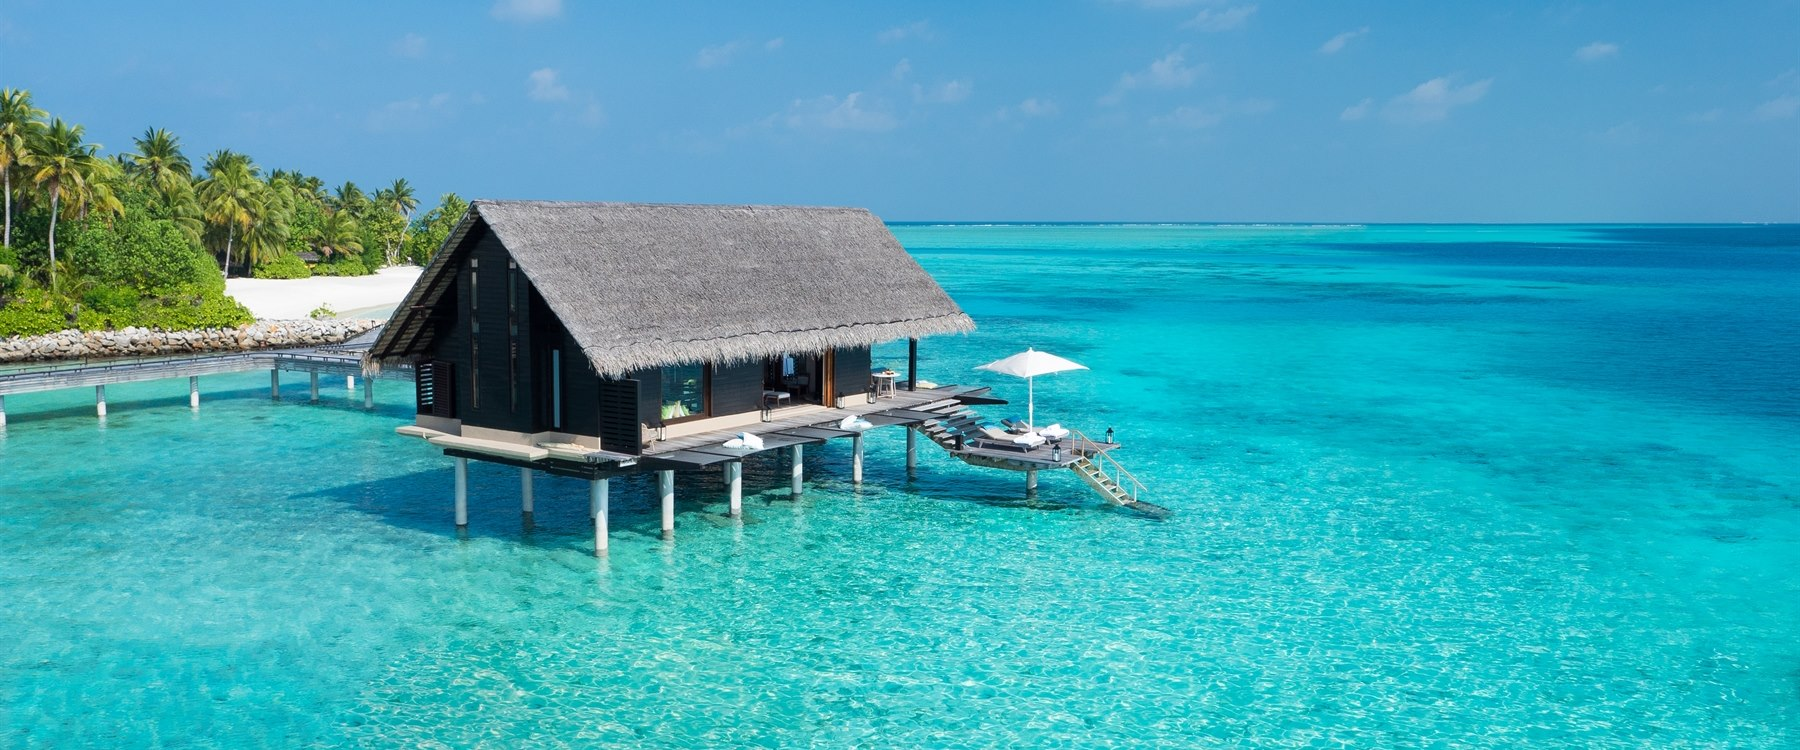 Water villa aerial at One&Only Reethi Rah, Maldives